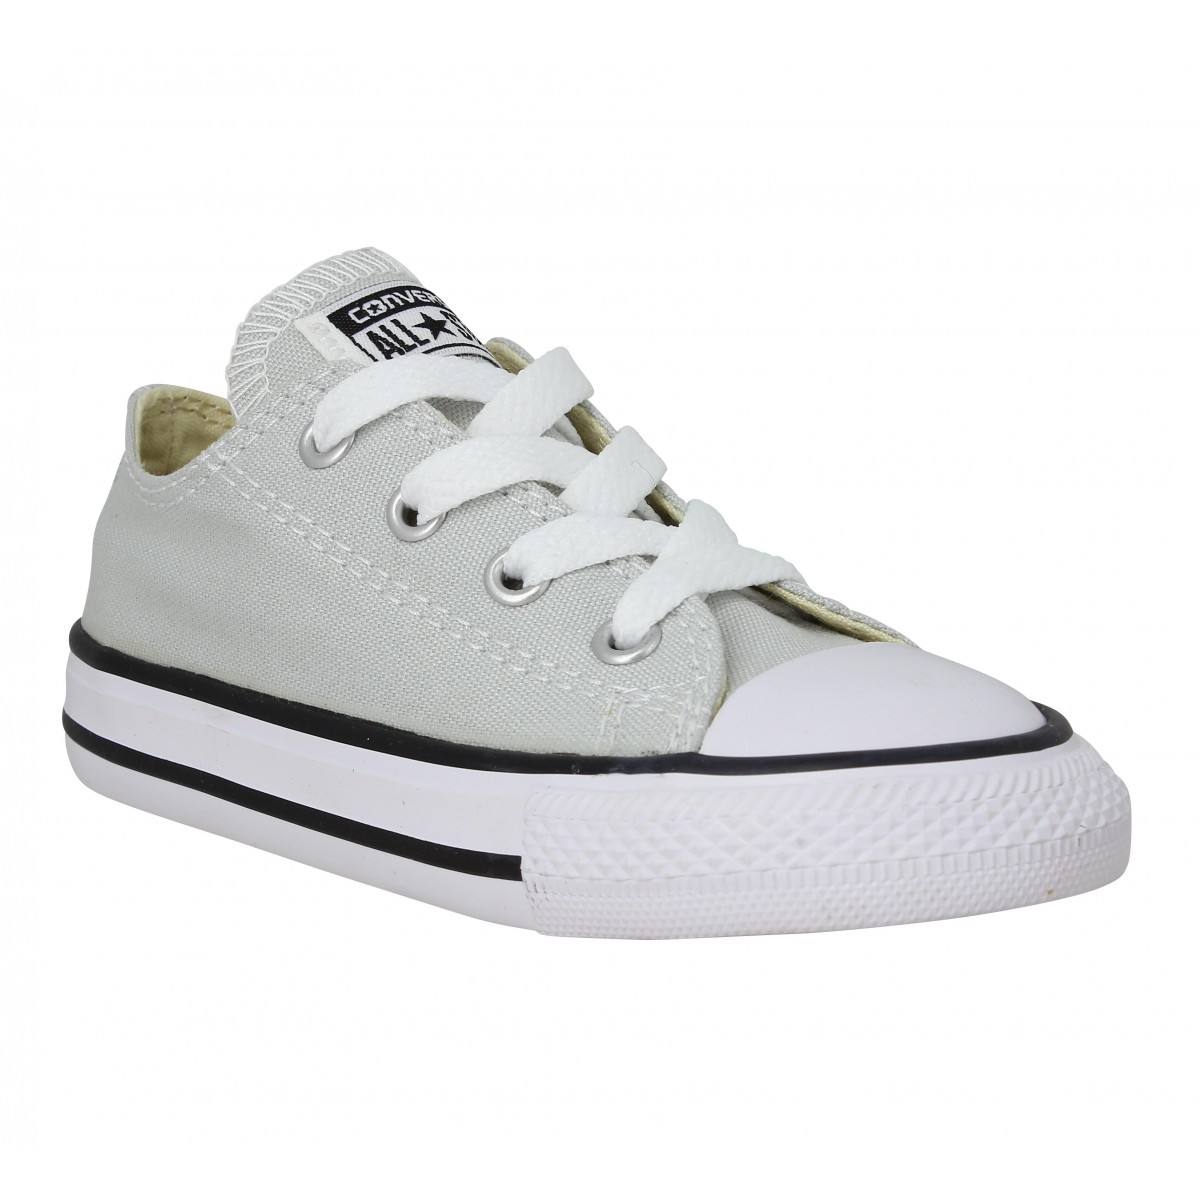 Baskets CONVERSE Chuck Taylor All Star toile Enfant Mousse